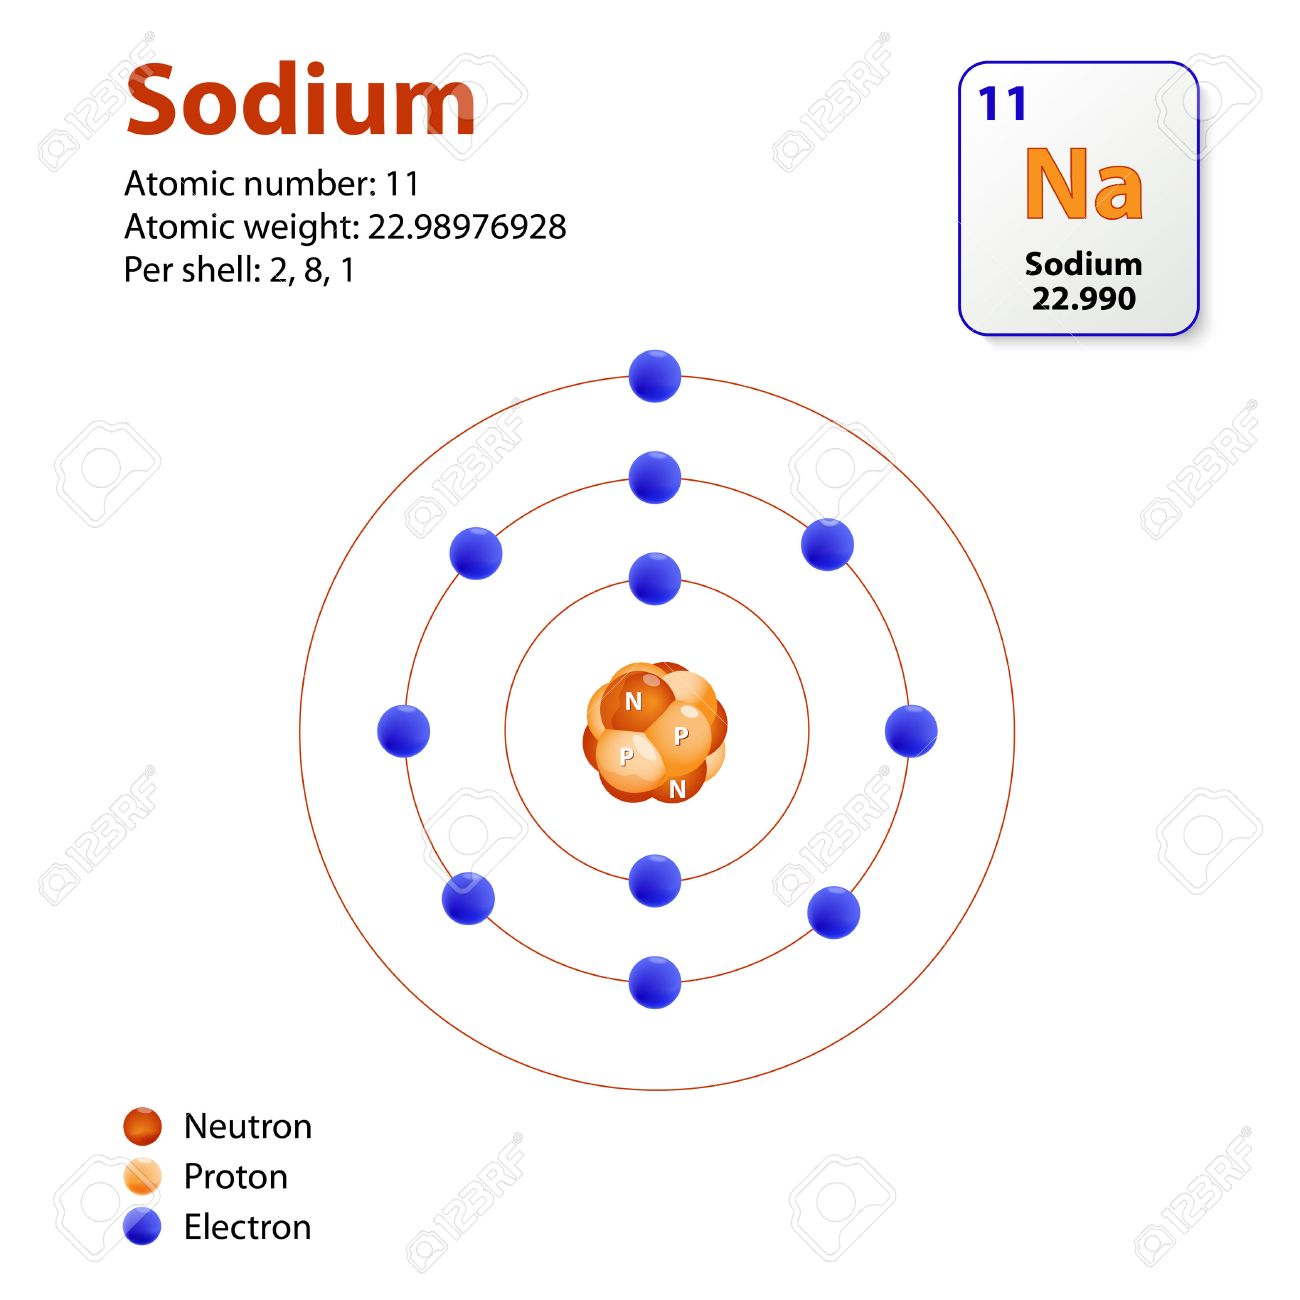 hight resolution of atom sodium this diagram shows the electron shell configuration for the sodium atom stock vector